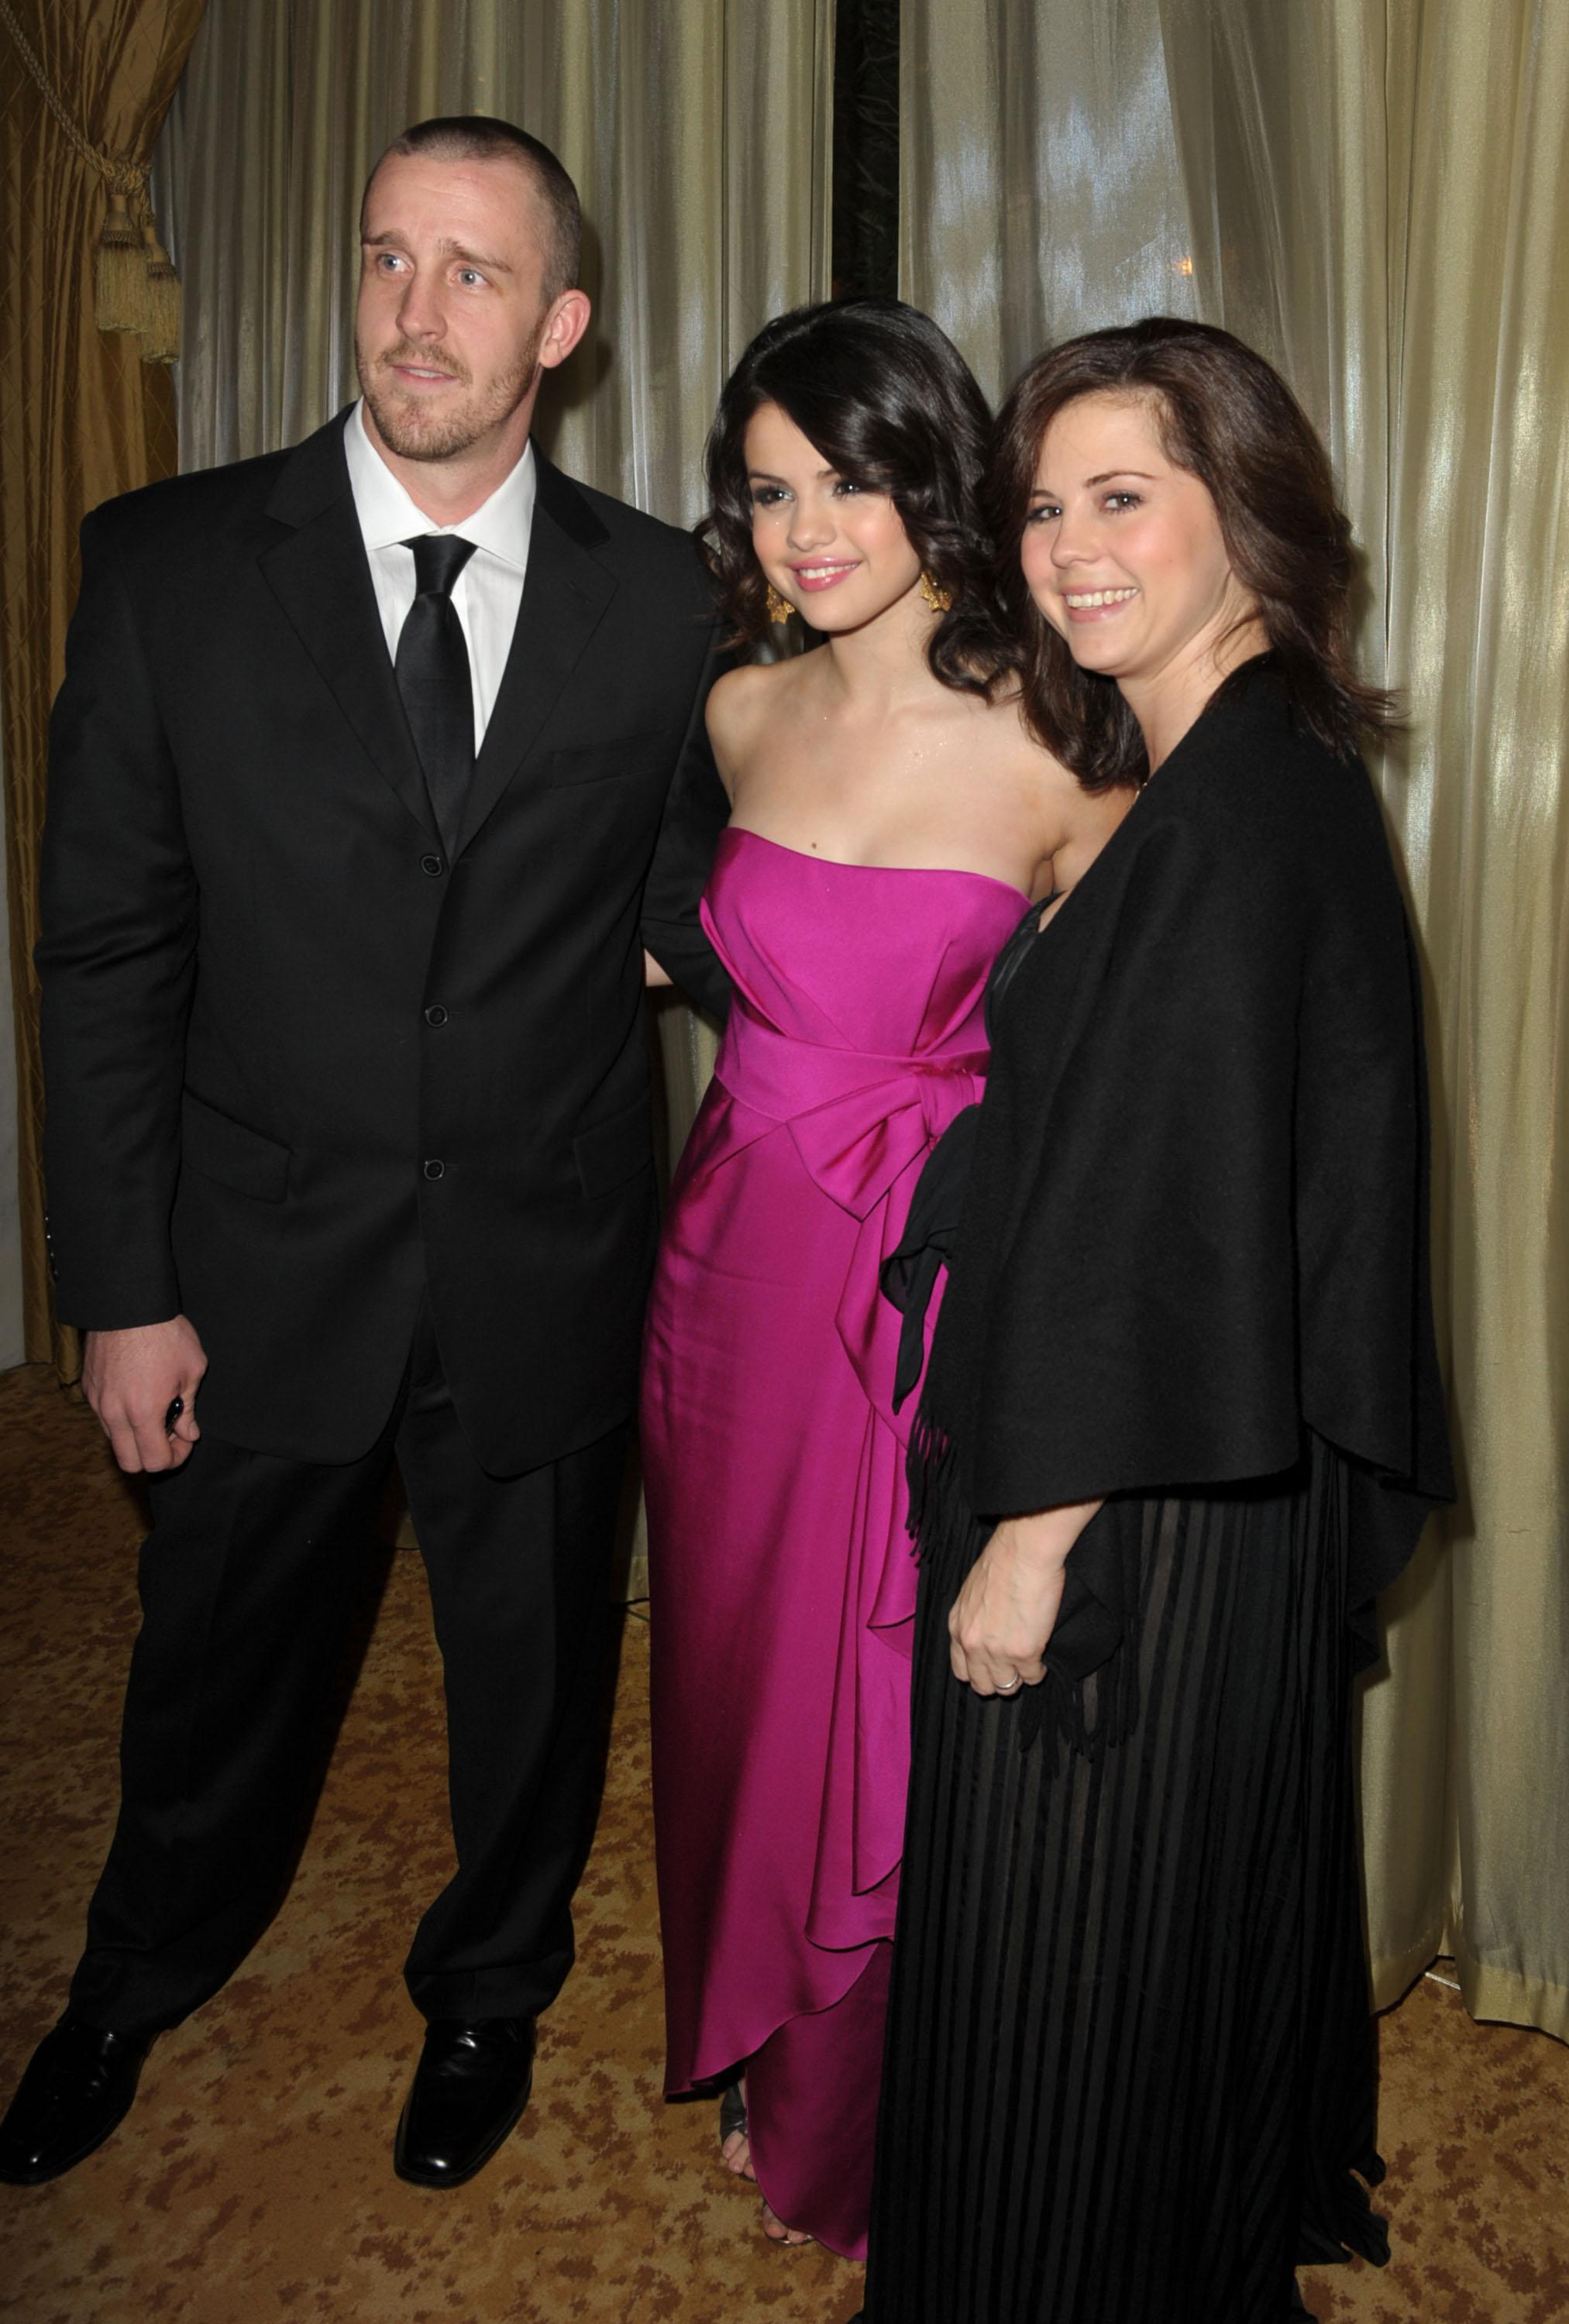 BEVERLY HILLS, CA - DECEMBER 10:  Actress Selena Gomez (C) with her mother Mandy Cornett (R) and step father Brian Teefey (L) attend the UNICEF Ball honoring Jerry Weintraub held at the Beverly Wilshire Hotel on December 10, 2009 in Beverly Hills, California.  (Photo by Kevin Winter/Getty Images for UNICEF)